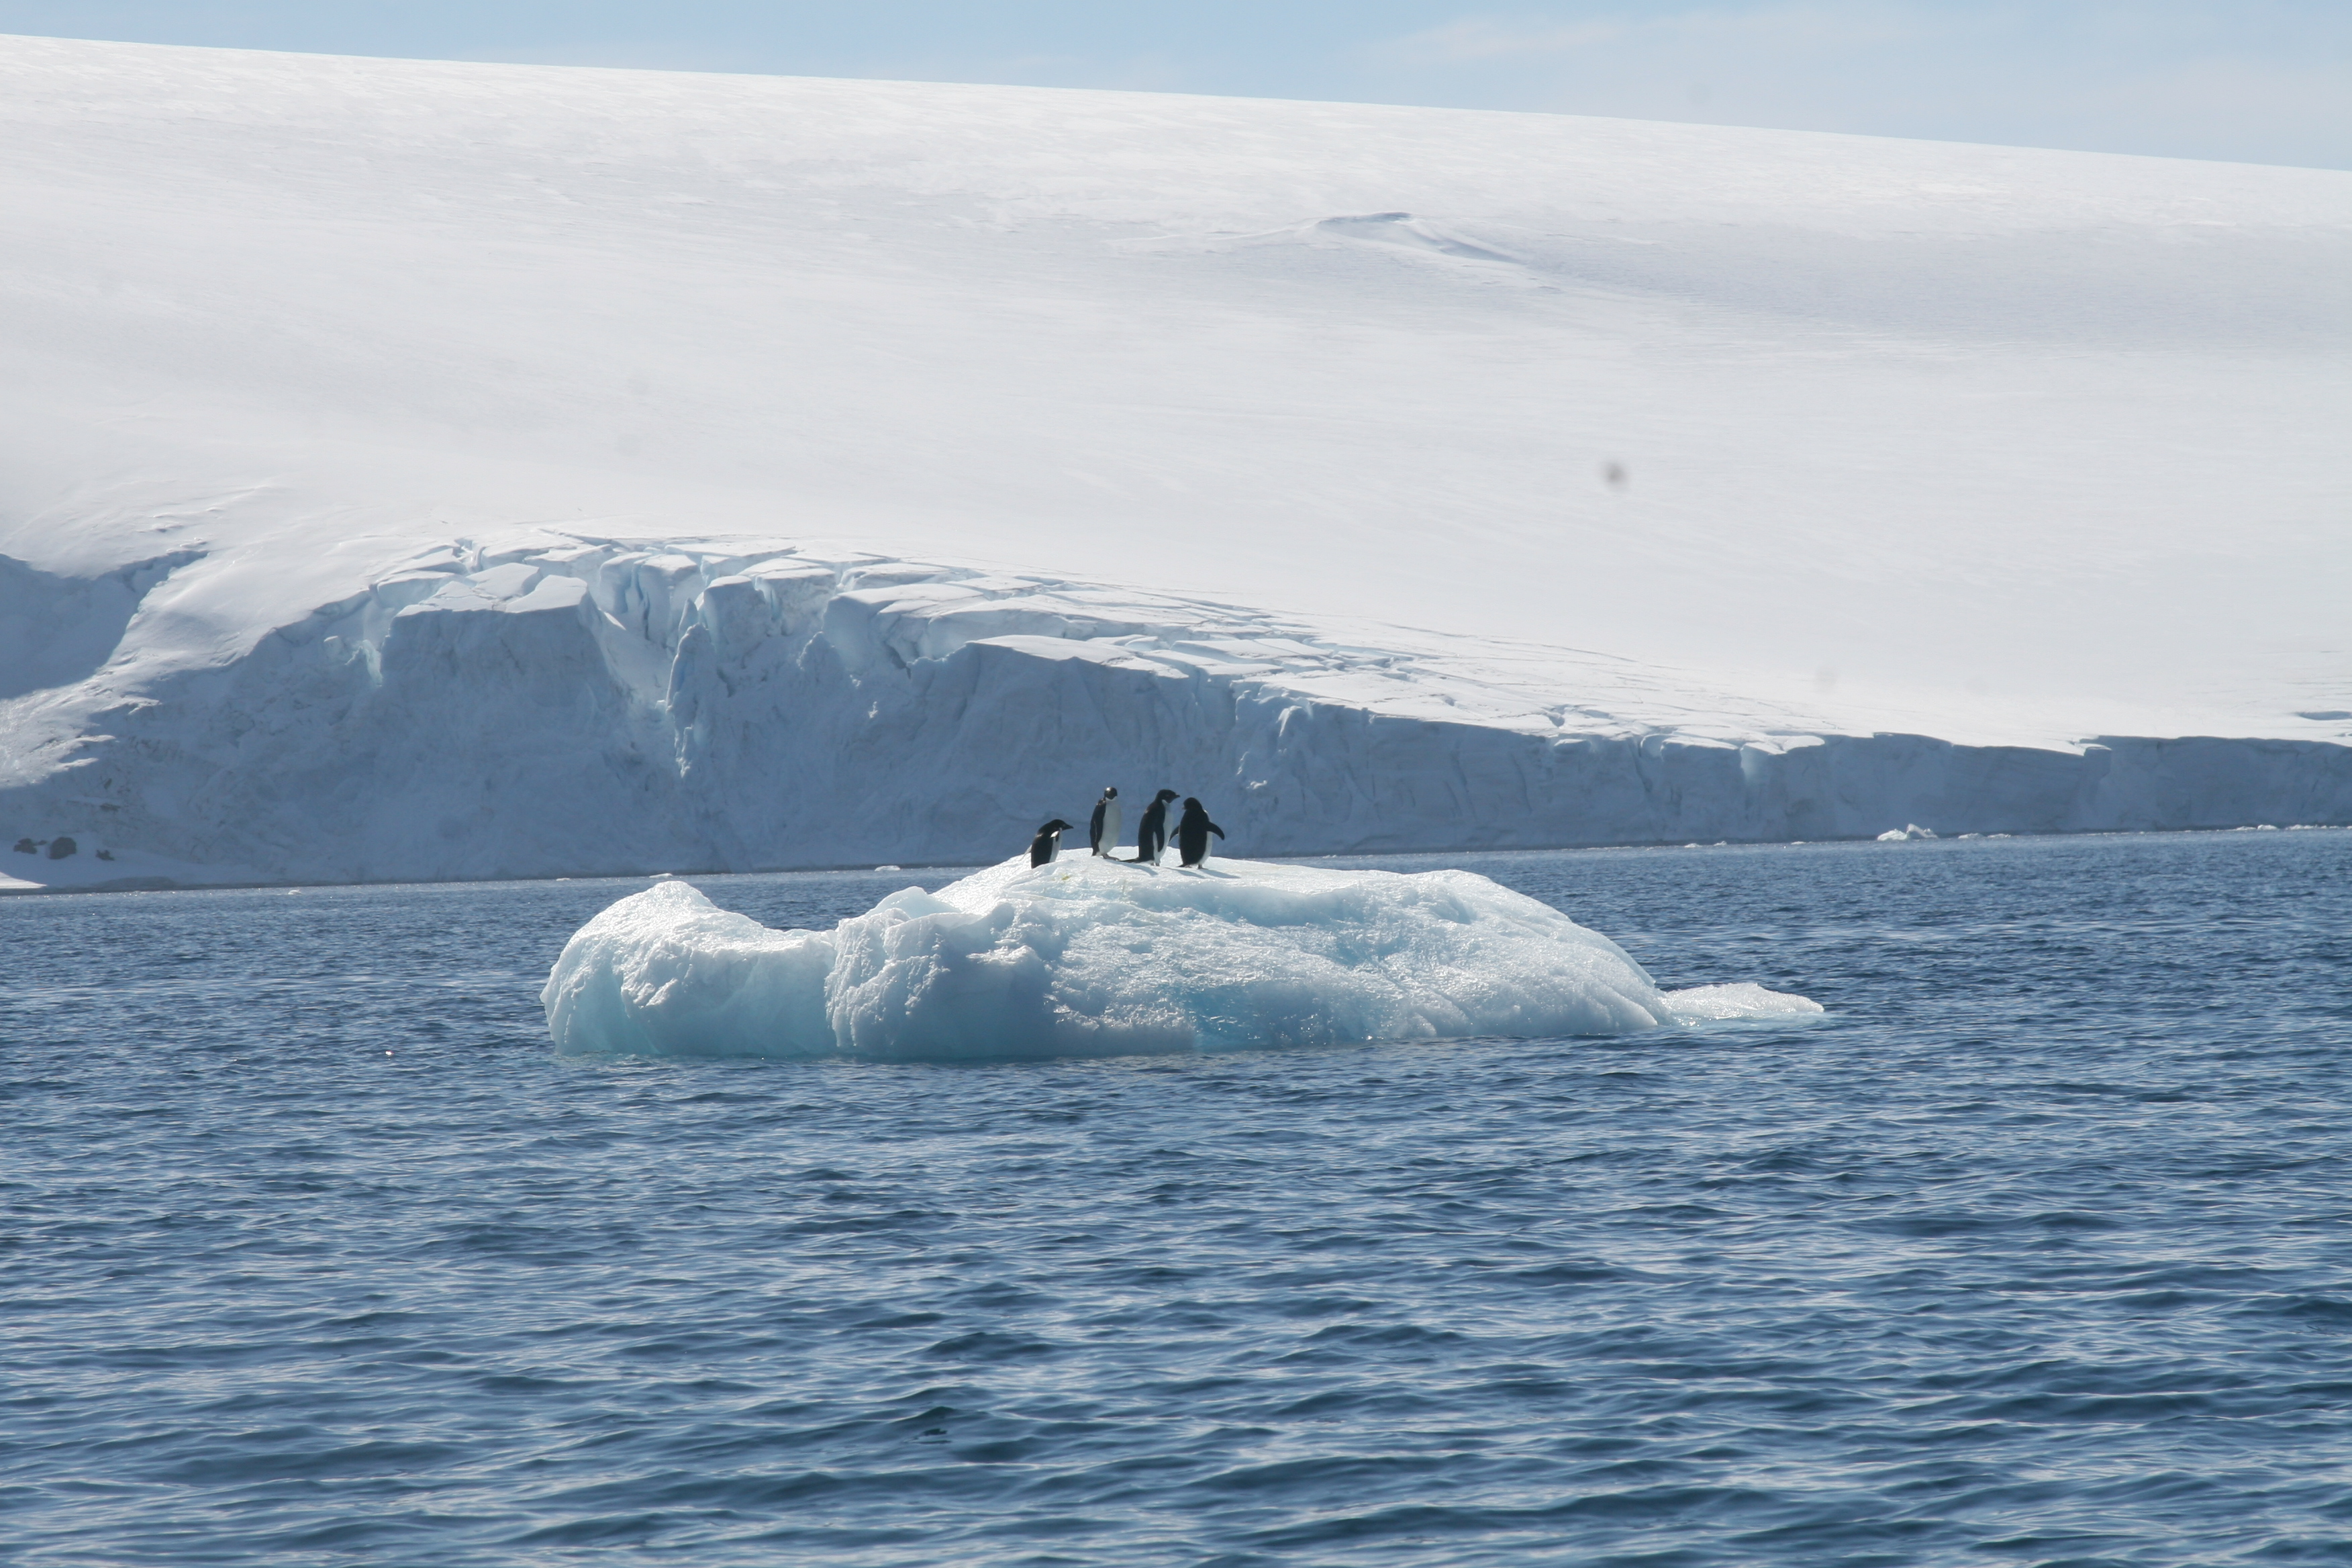 Penguins on an iceberg in Hope Bay, Antarctica (Photo credit: Brian Druker)